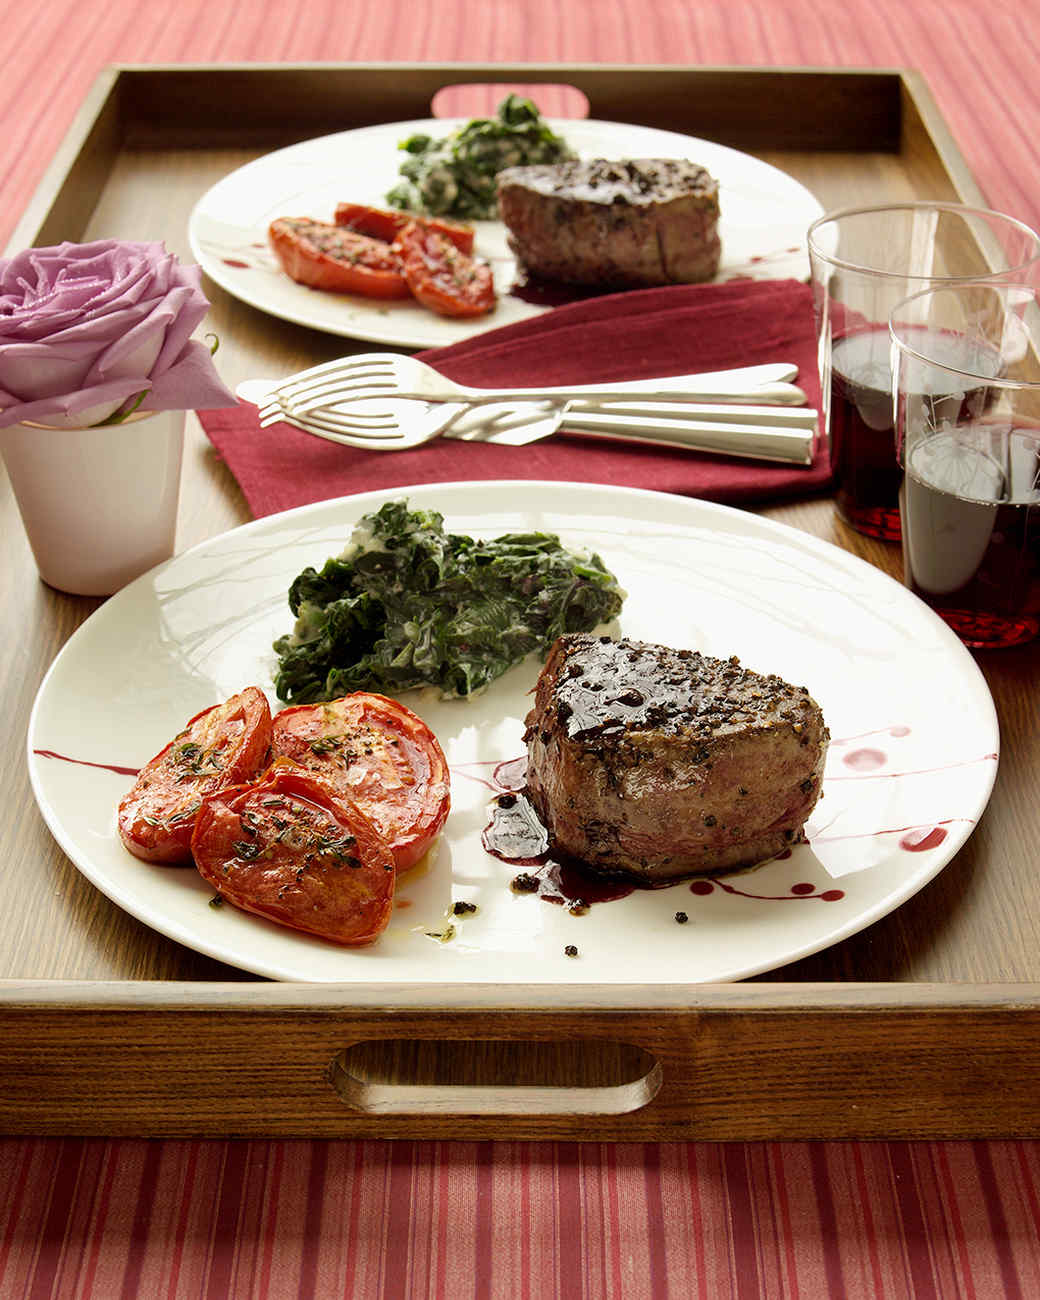 20060105_edf_filetmignon.jpg